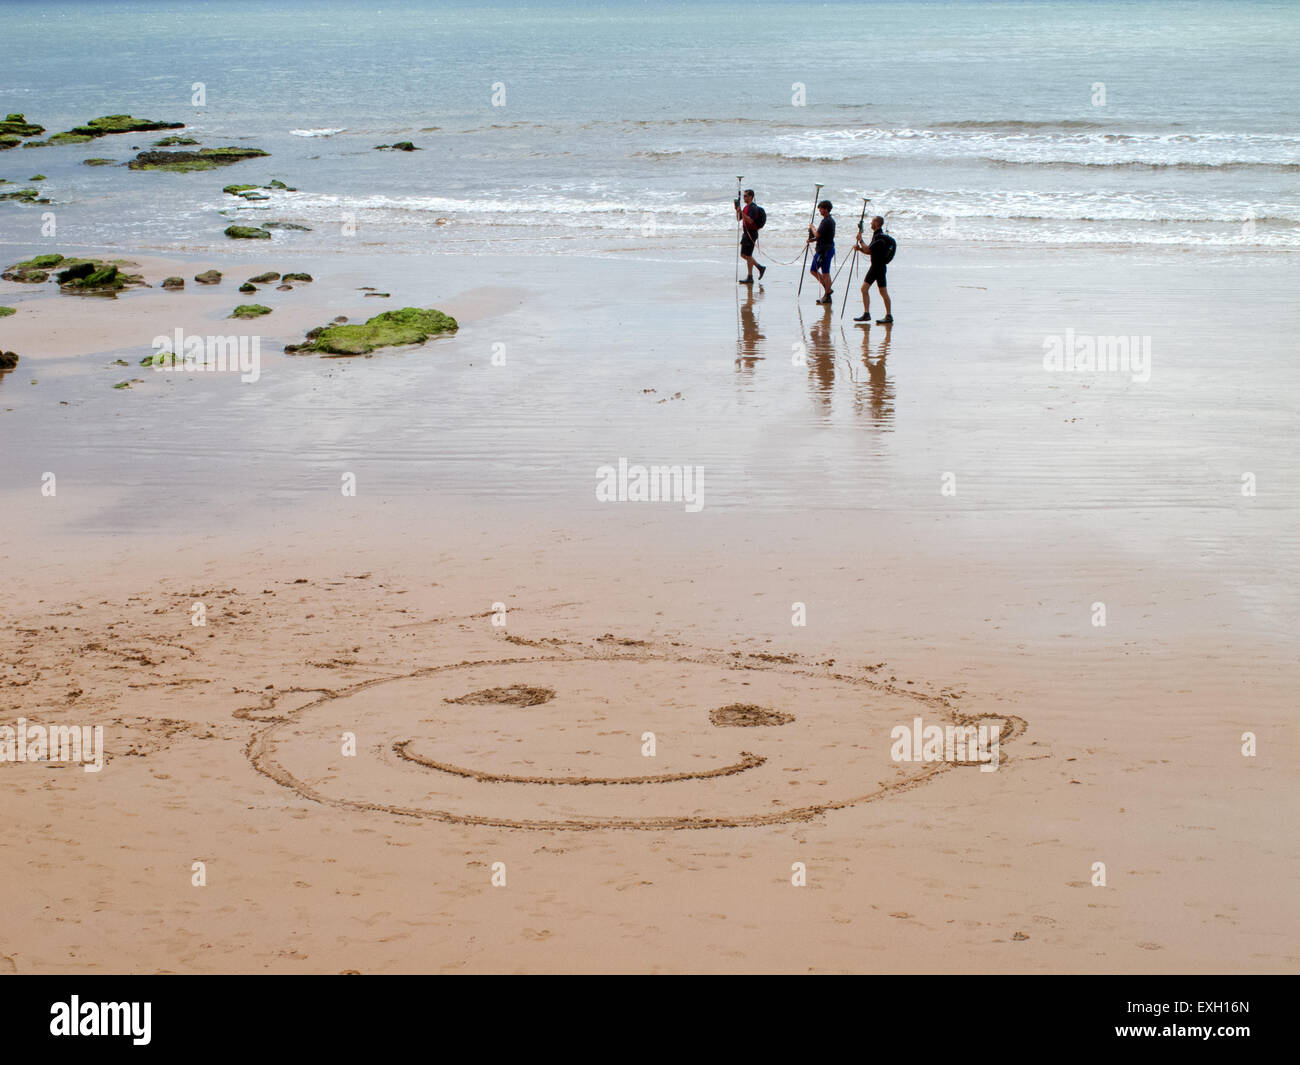 sidmouth-a-smiley-face-in-the-sand-greet